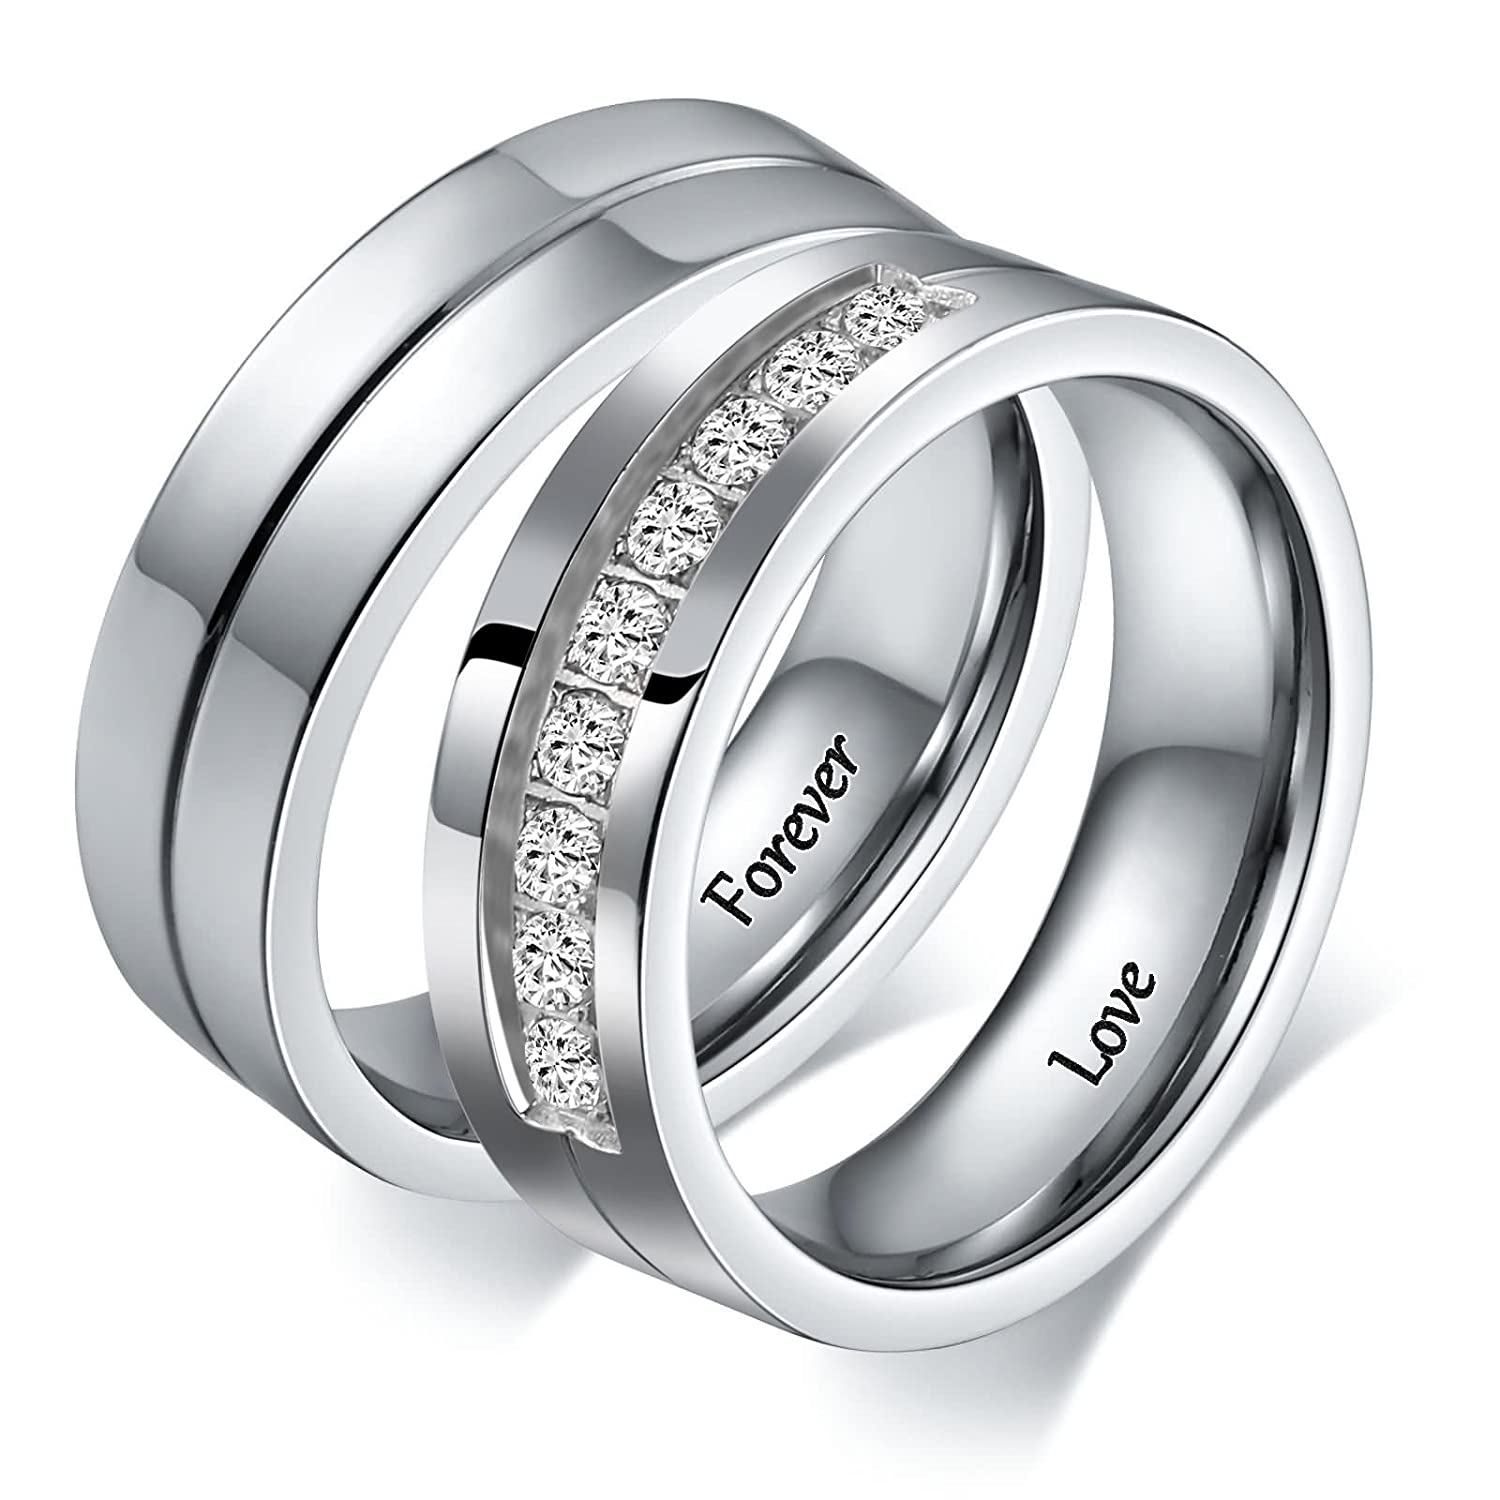 ecf50624d2 Amazon.com: Aeici 2 PCS Couple Rings Stainless Steel Wedding Rings for Men  Women Personalized Size 5 & Size 10: Jewelry